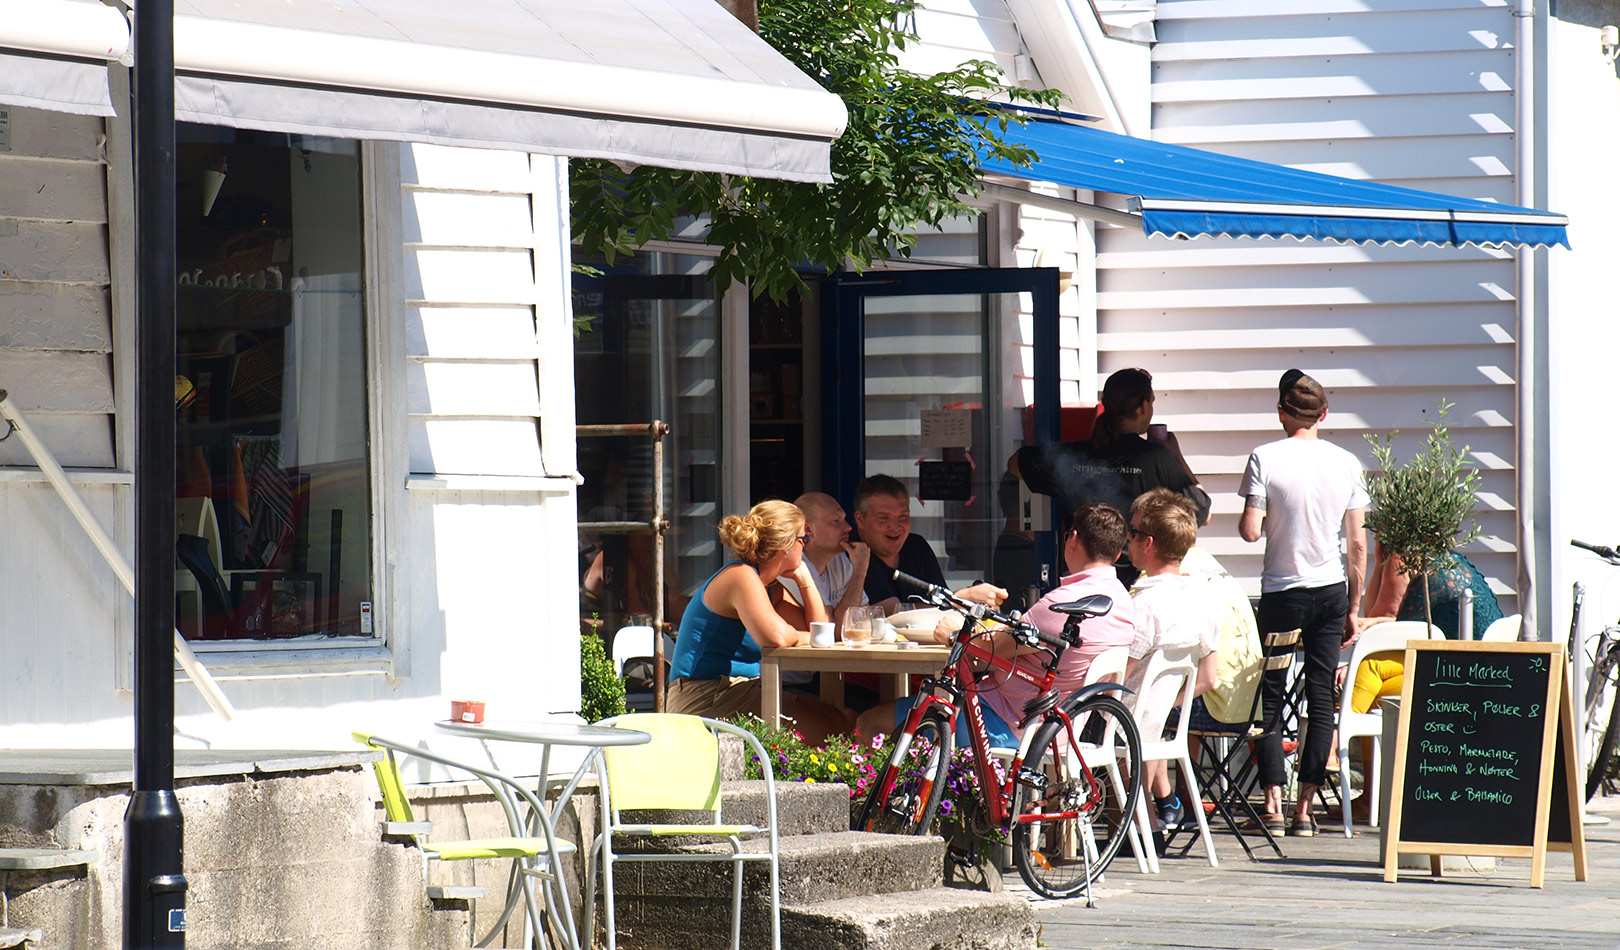 Café and people sitting in the sun in Florø.